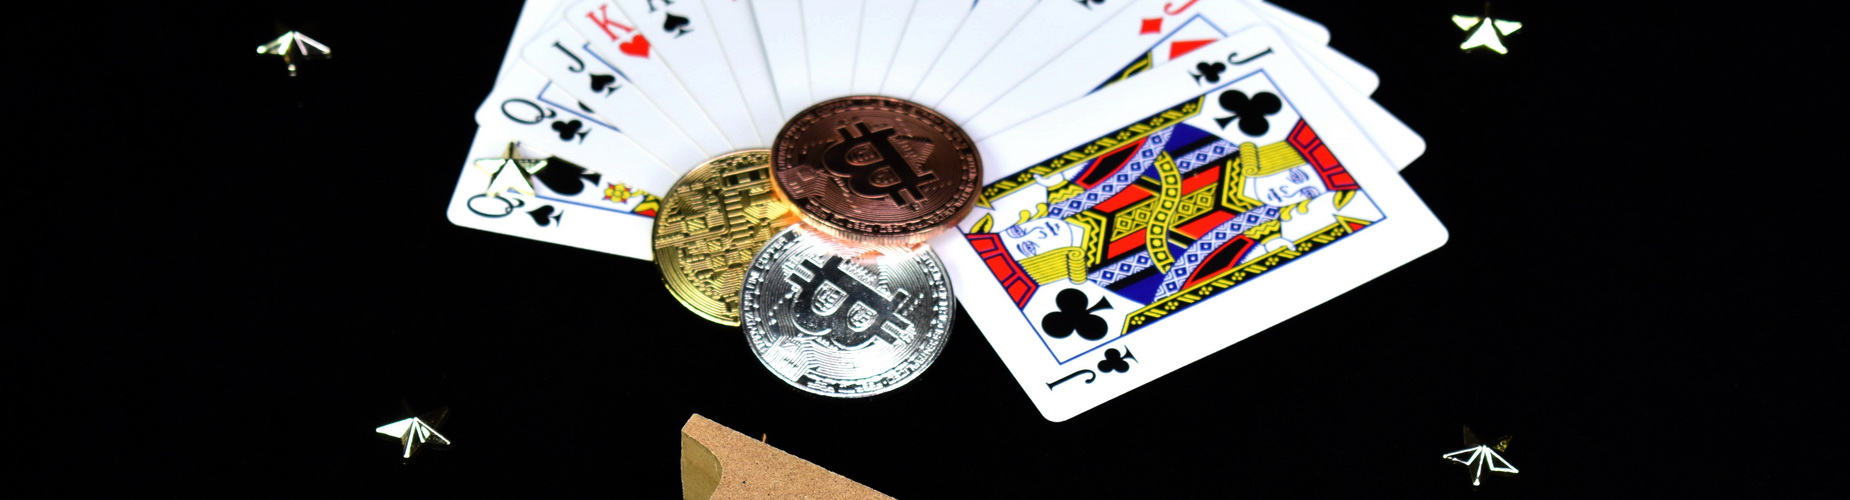 Detecting betting patterns in BTC poker